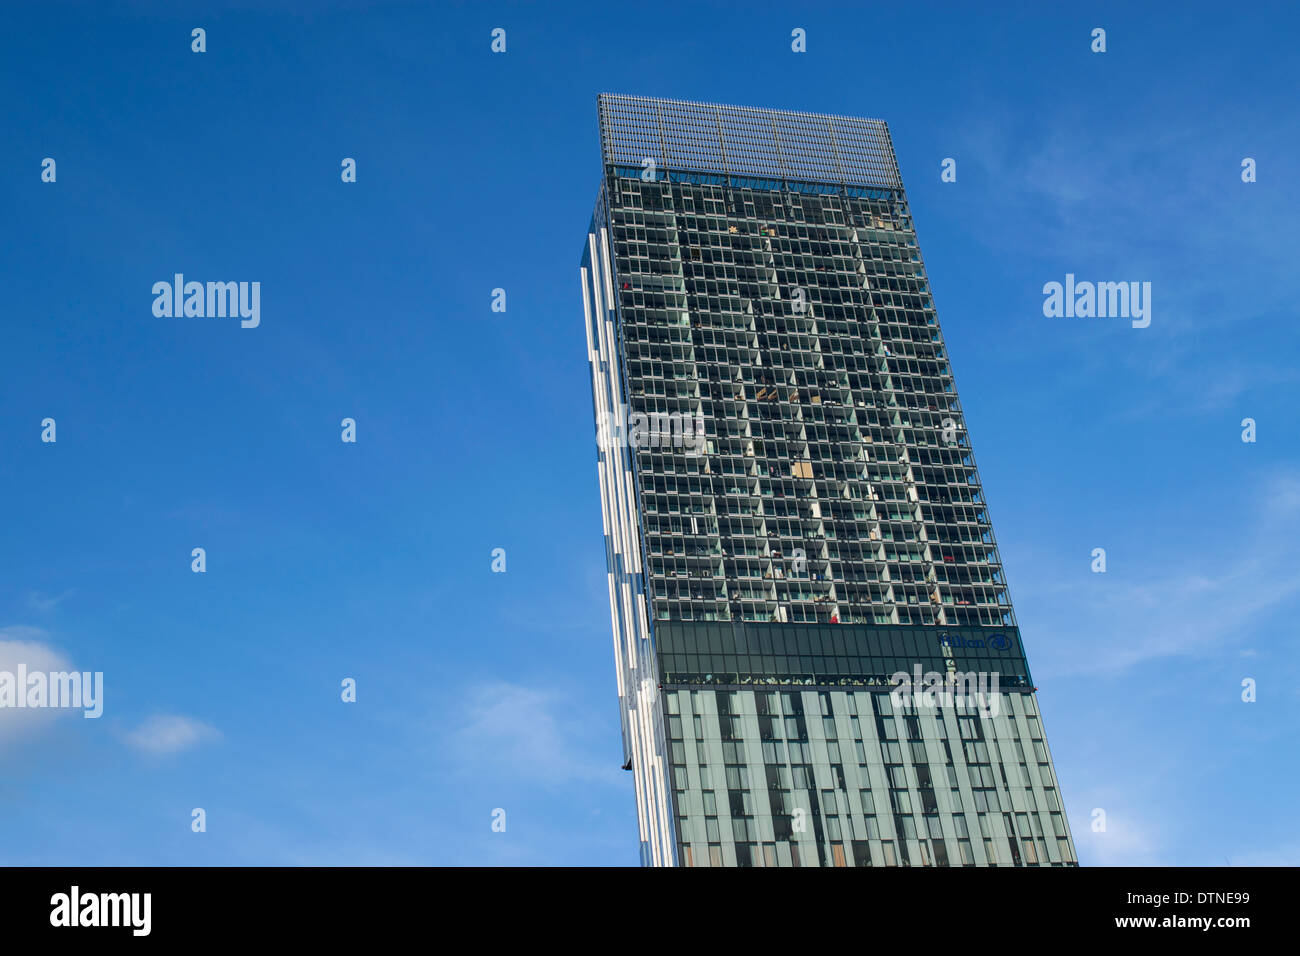 Beetham Tower mixed use skyscraper in Manchester city centre, England, UK - Stock Image